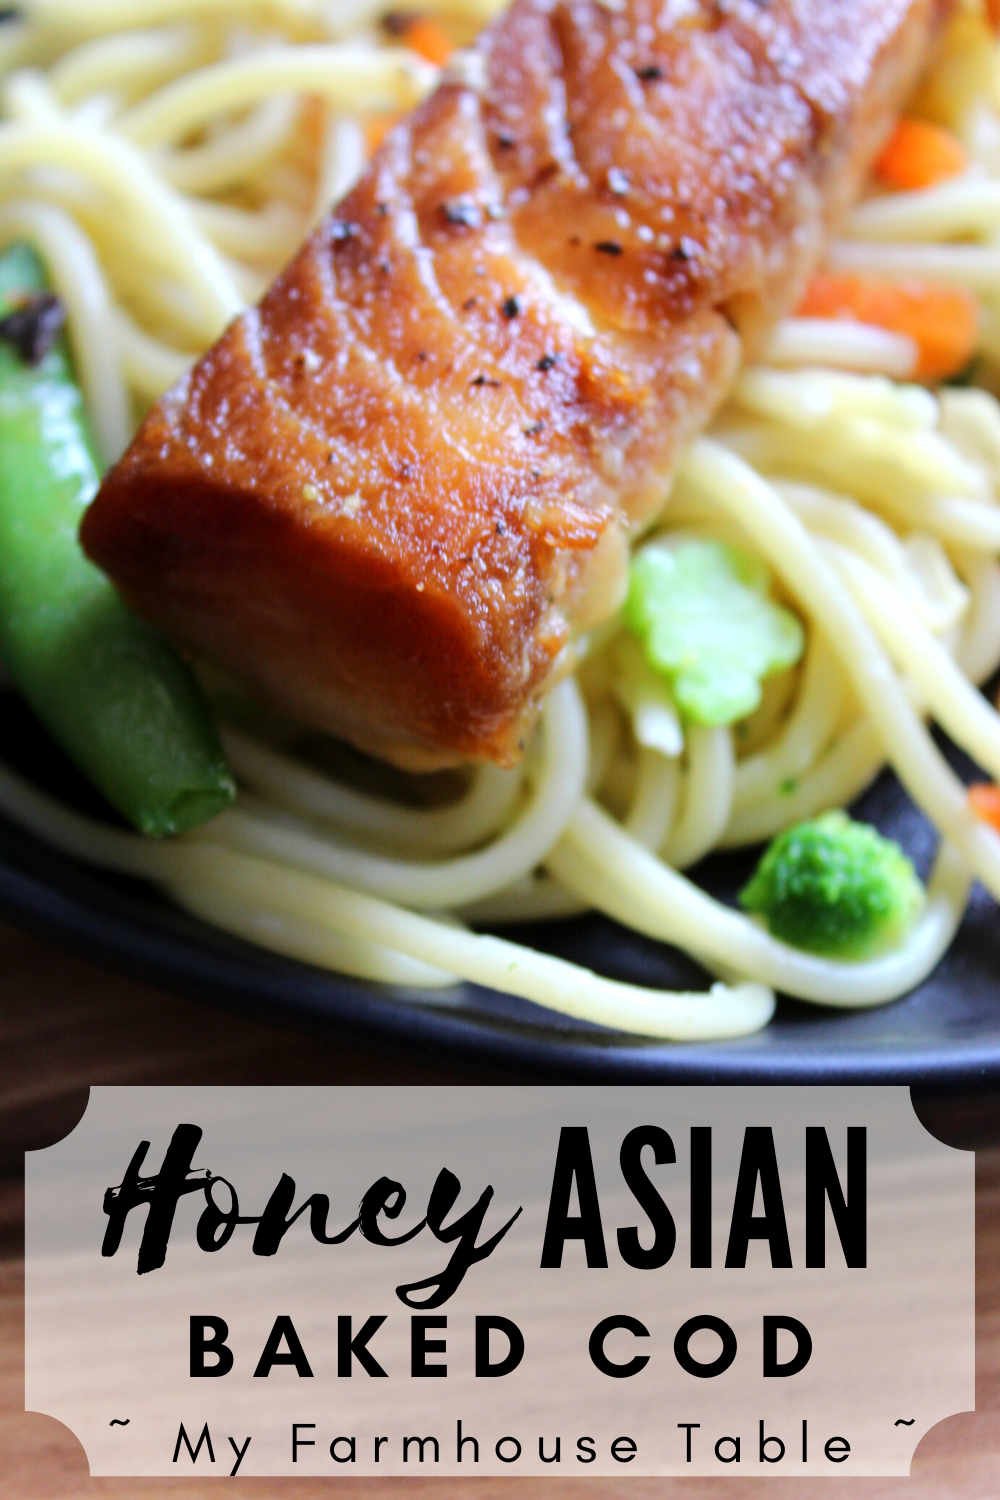 Honey Asian Baked Cod Soy Sauce Easy and Delicious Oven Baked Cod Asian Marinated Cod Recipe My Farmhouse Table